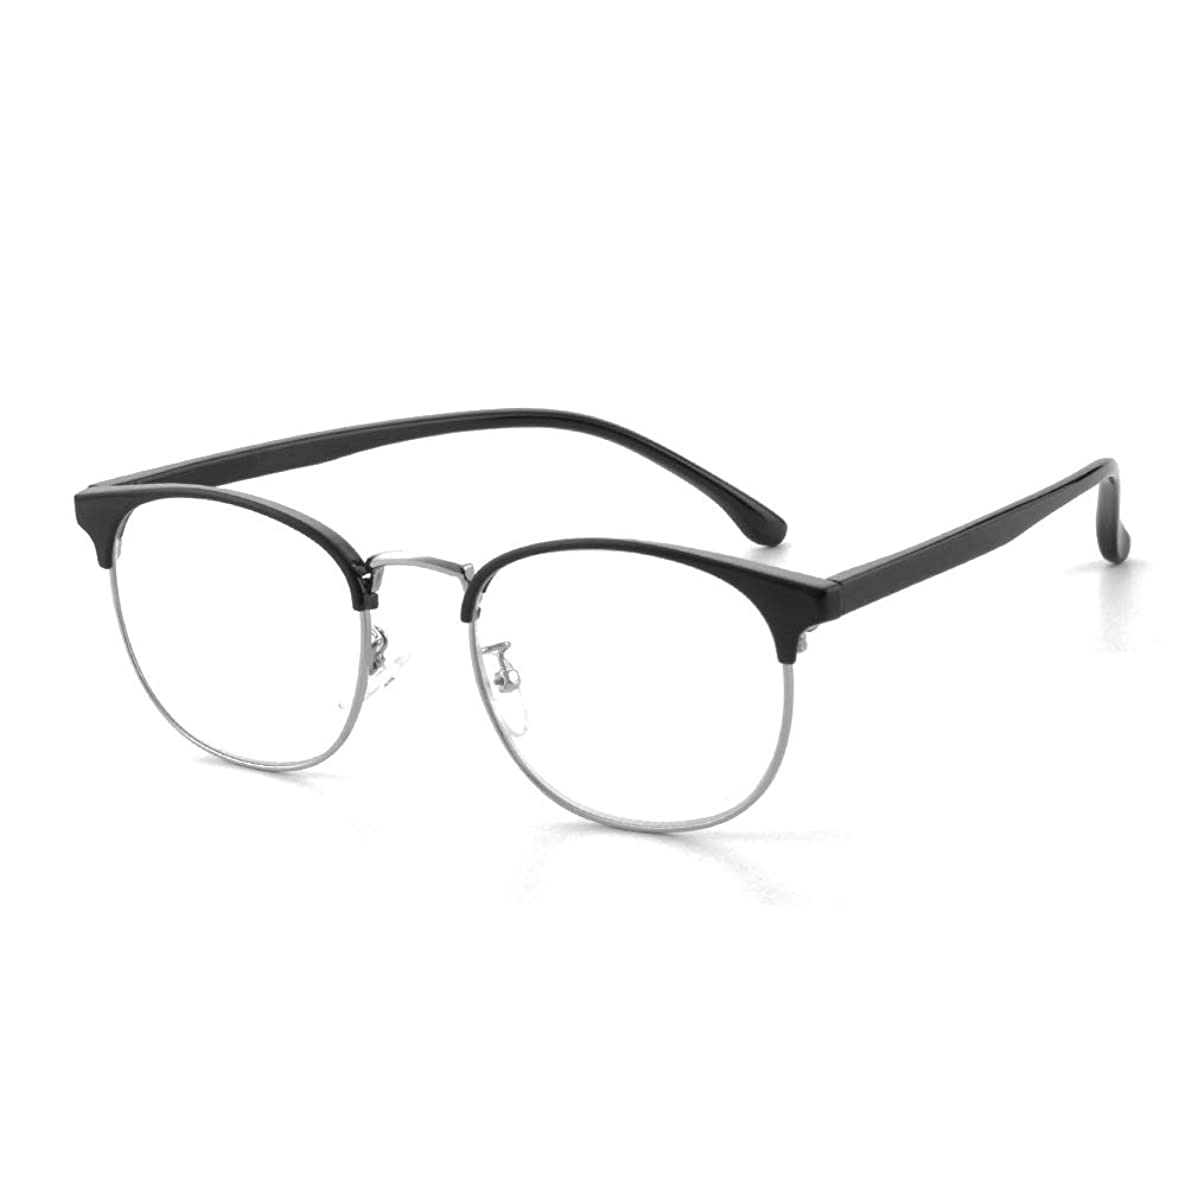 Gudzws Reading Glasses Anti Blue Light Blocking Prevent Eye Fatigue Frome Computer TV Cellphone Classic Vintage Big Rectange Frame with Metal Rim Black Unisex +2.00